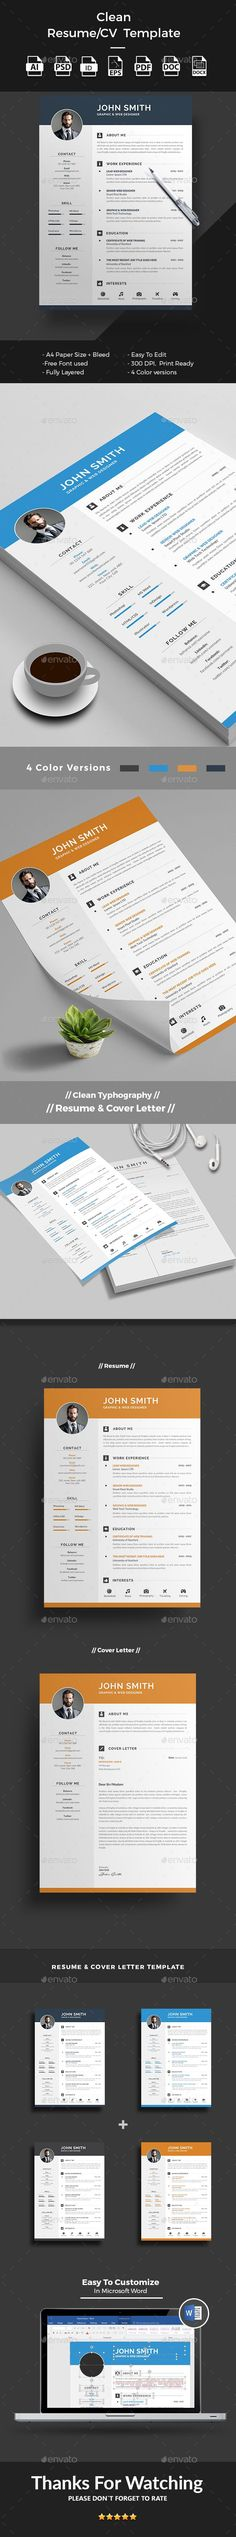 #Resume - #Resumes #Stationery Download here: https://graphicriver.net/item/resume/17494830?ref=alena994